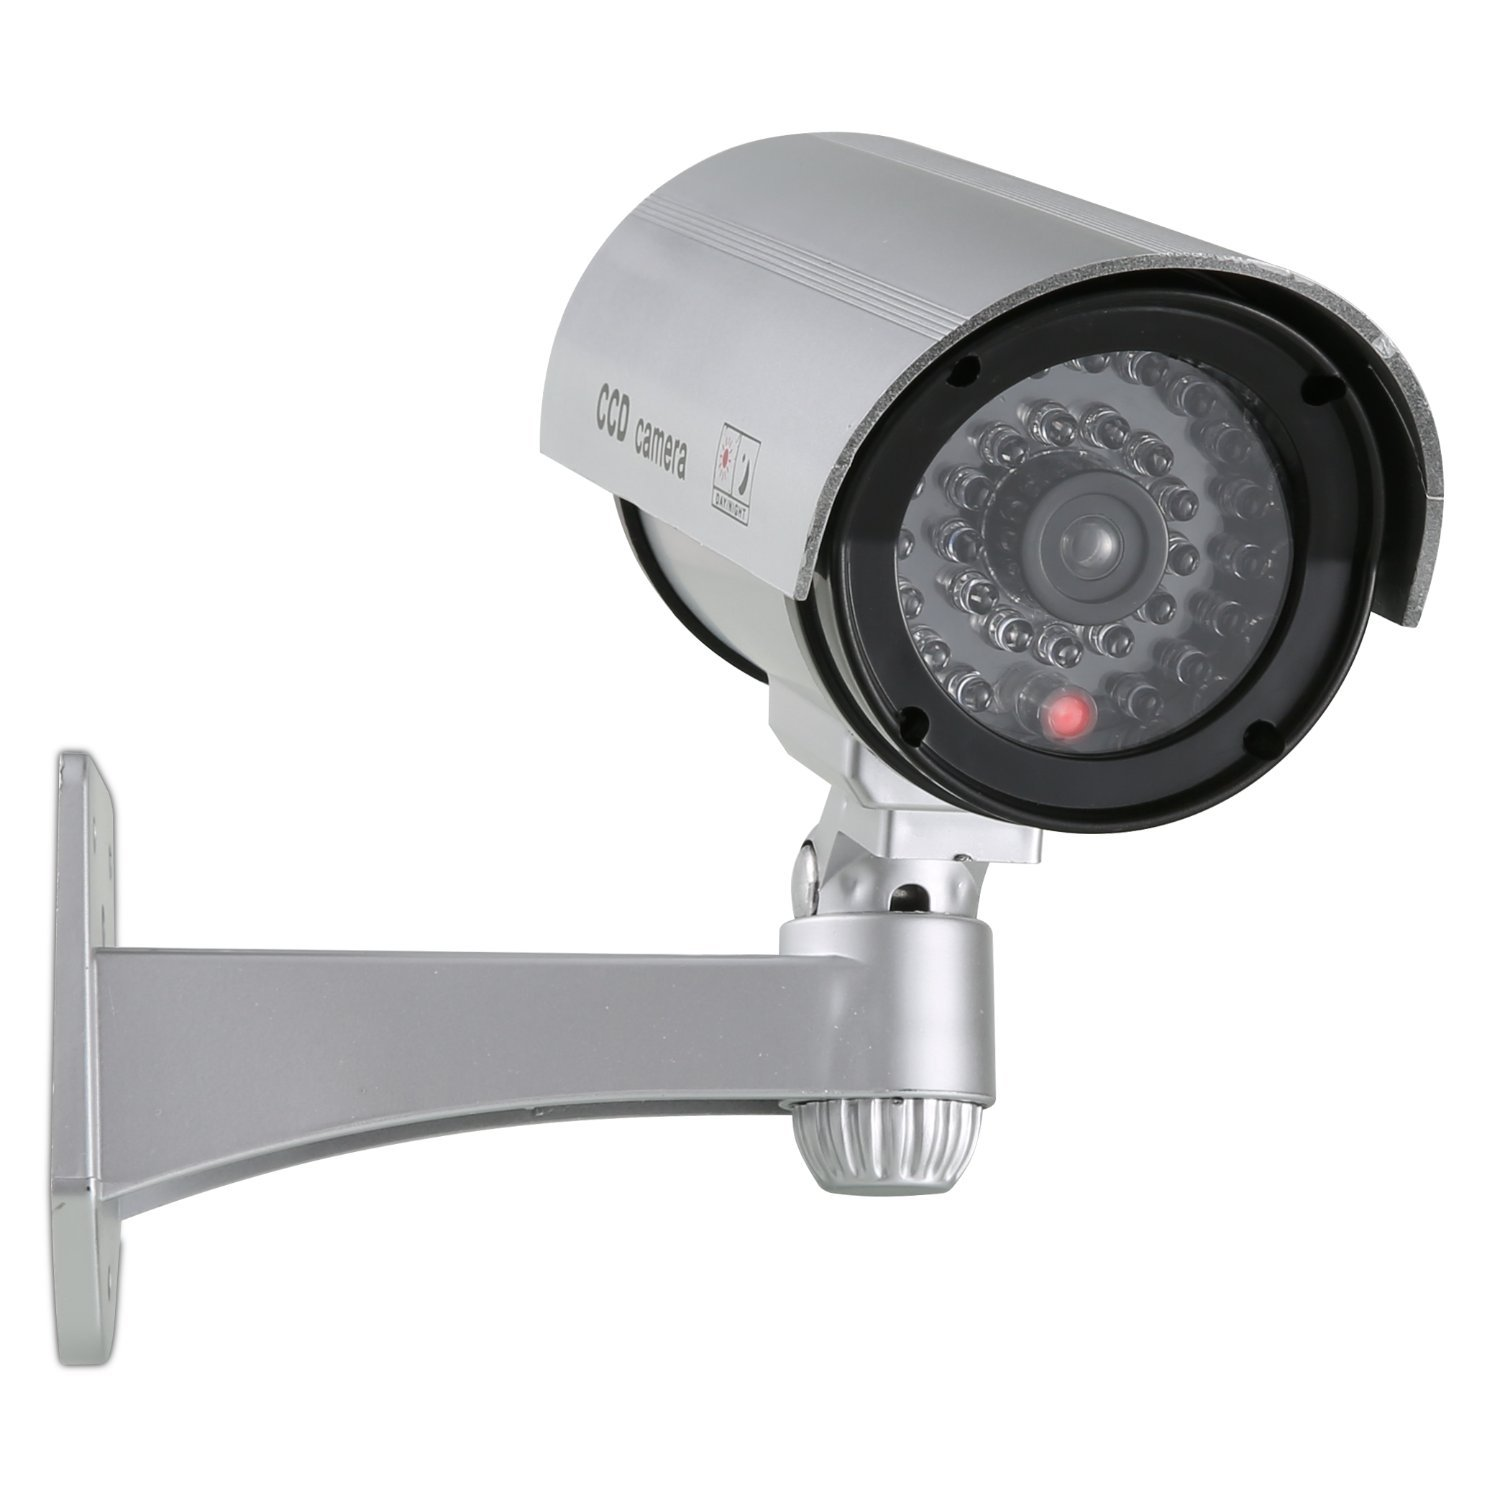 ANNKE 2 Pack Home Security Simulated Cameras with Flashing Red LED for Indoor and Outdoor use by ANNKE (Image #6)